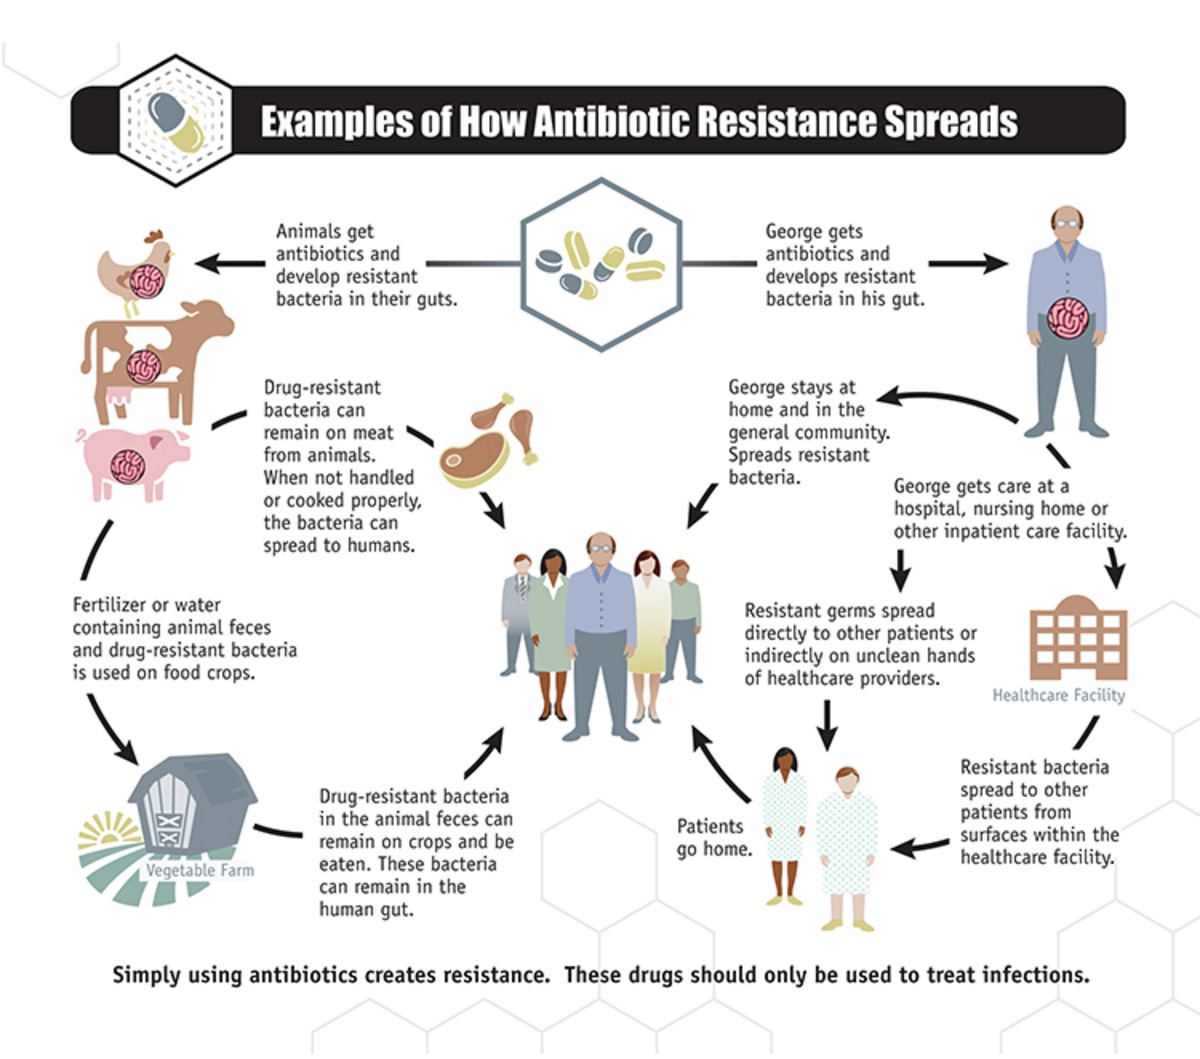 A diagram illustrating the spread of antibiotic resistance